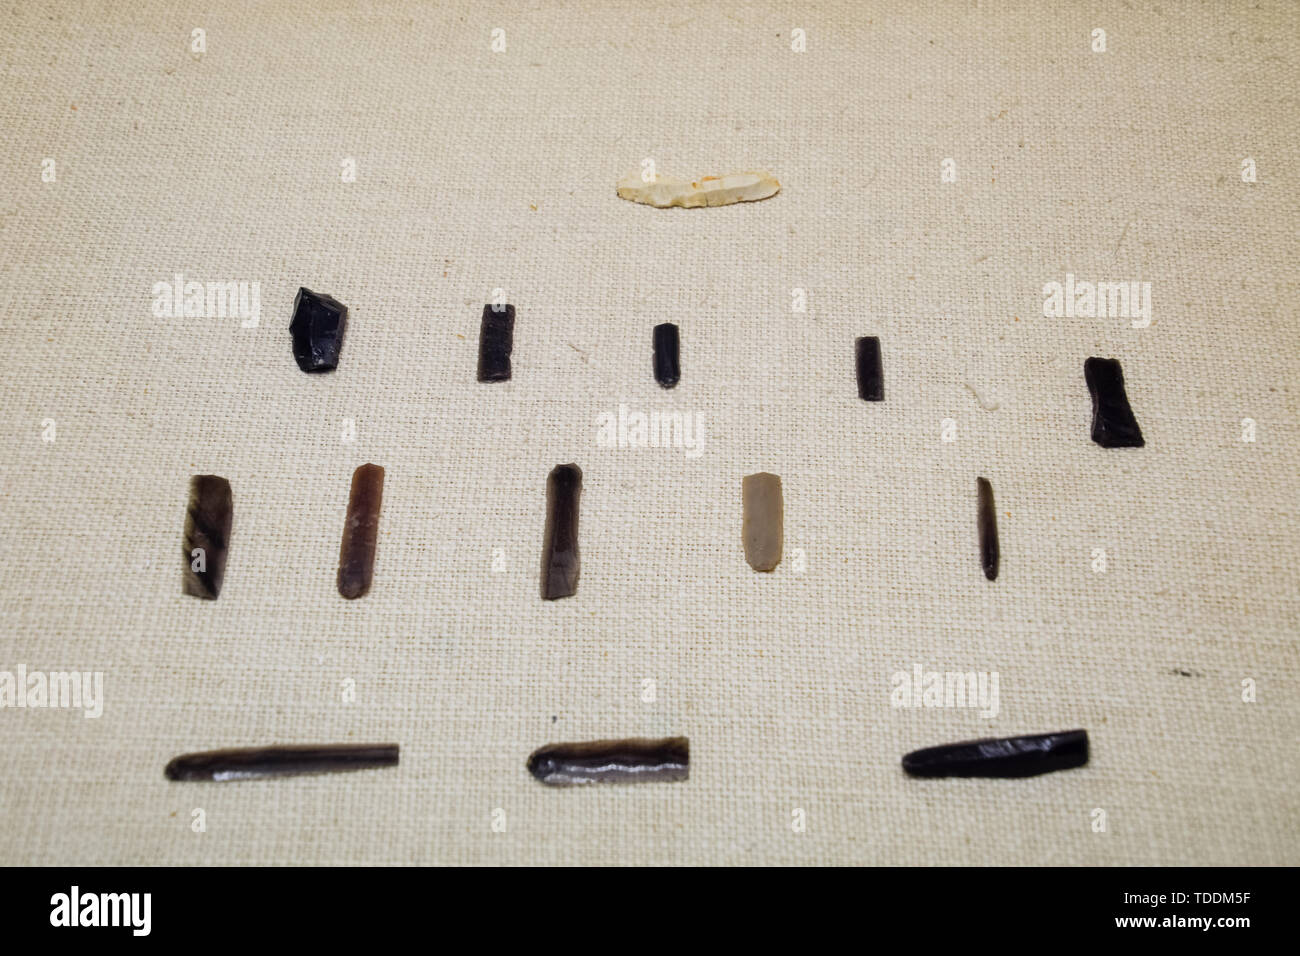 Exhibits of the Antalya Museum of Antiquities, stone scrapers and knives and pottery. - Stock Image